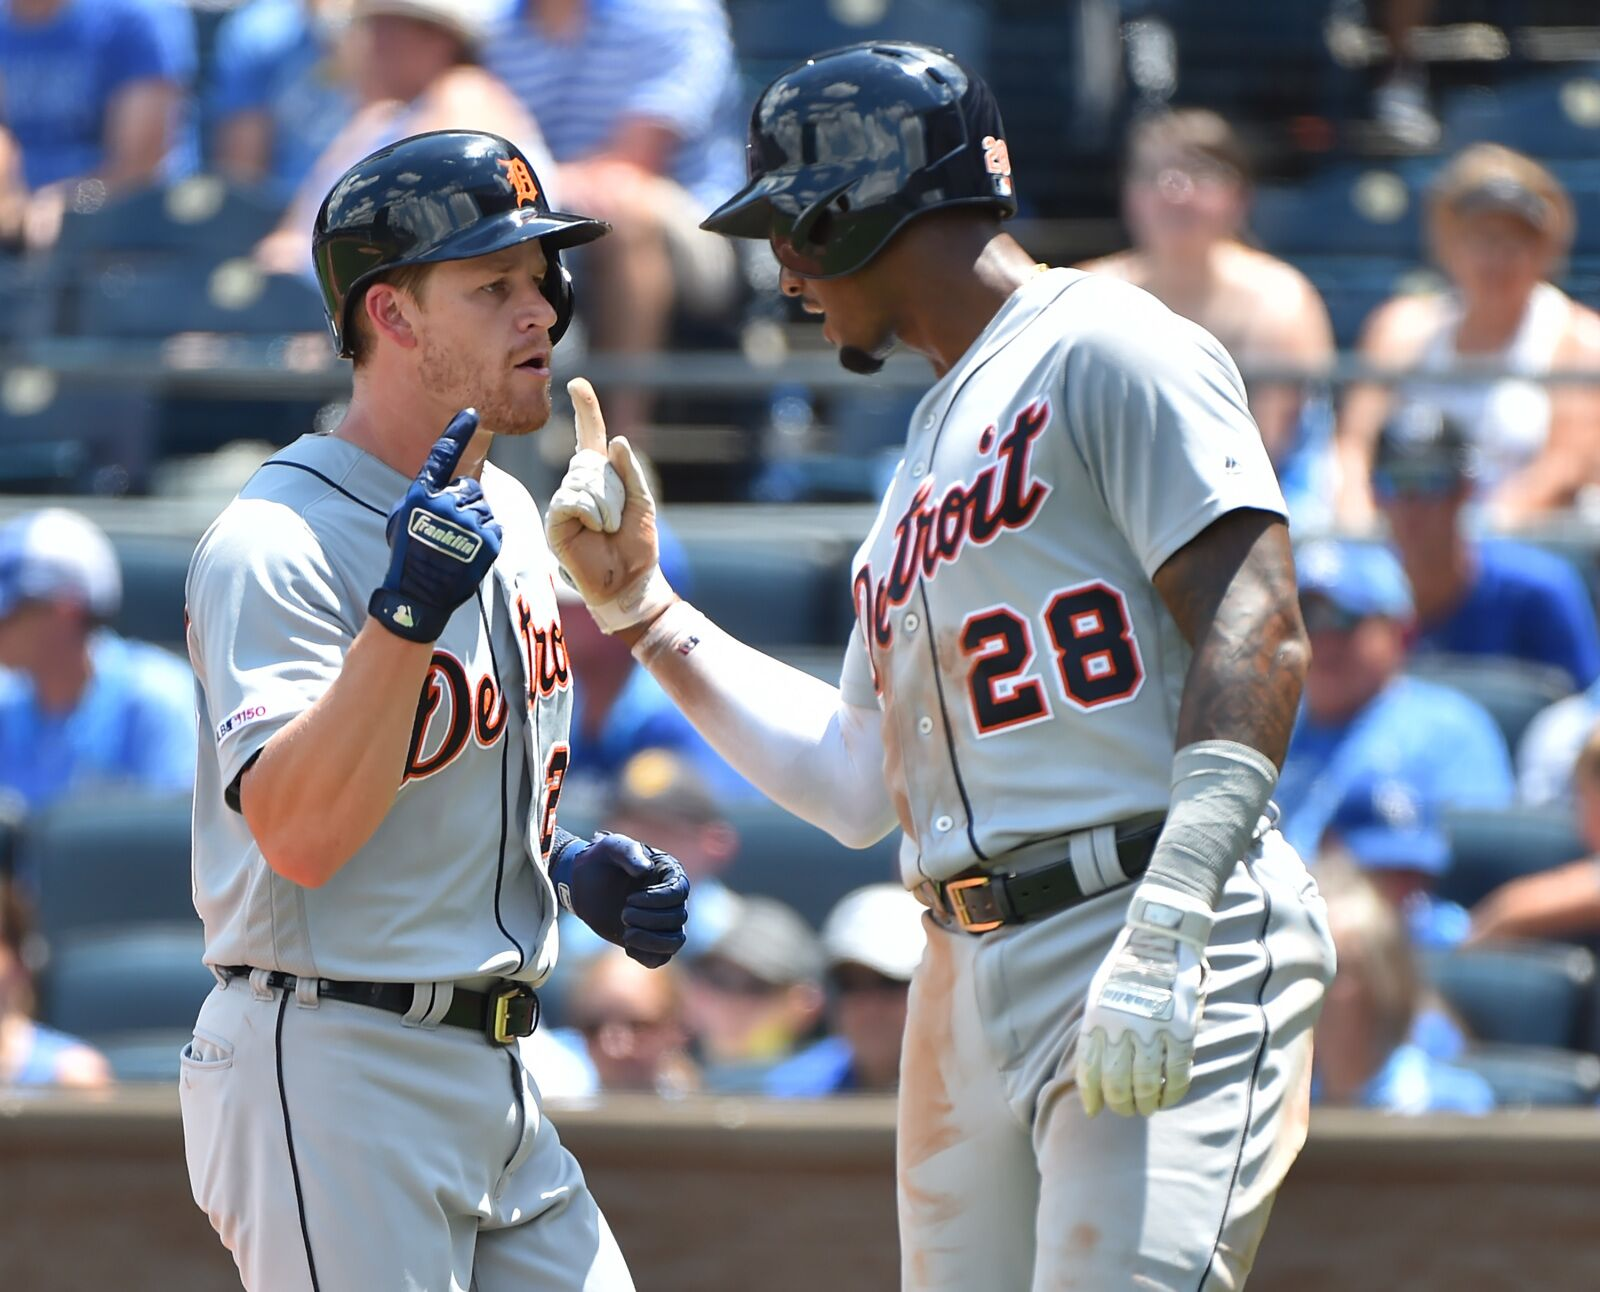 Detroit Tigers: Tigers head to Cleveland for another division battle